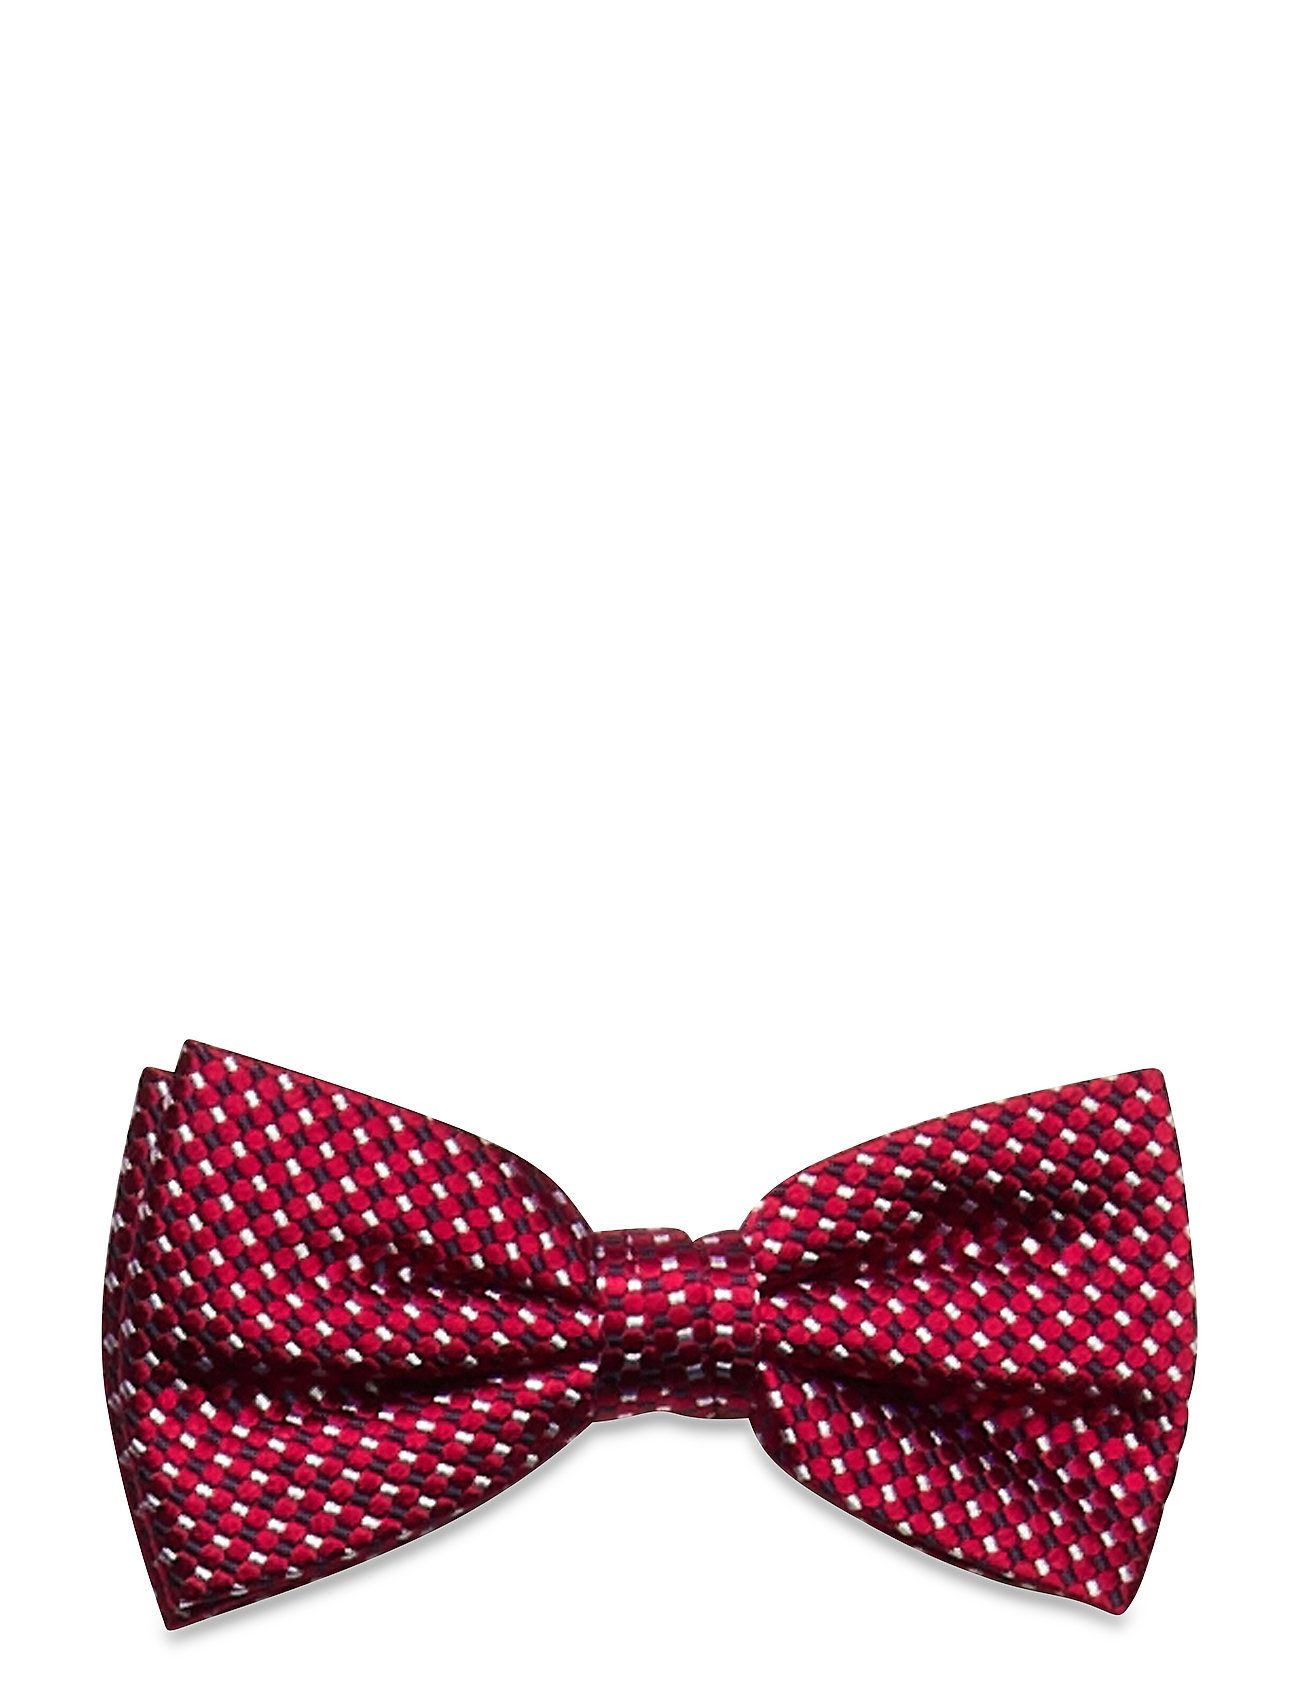 Image of Micro Design Silk Bowtie Butterfly Rød Tommy Hilfiger Tailored (3425610565)